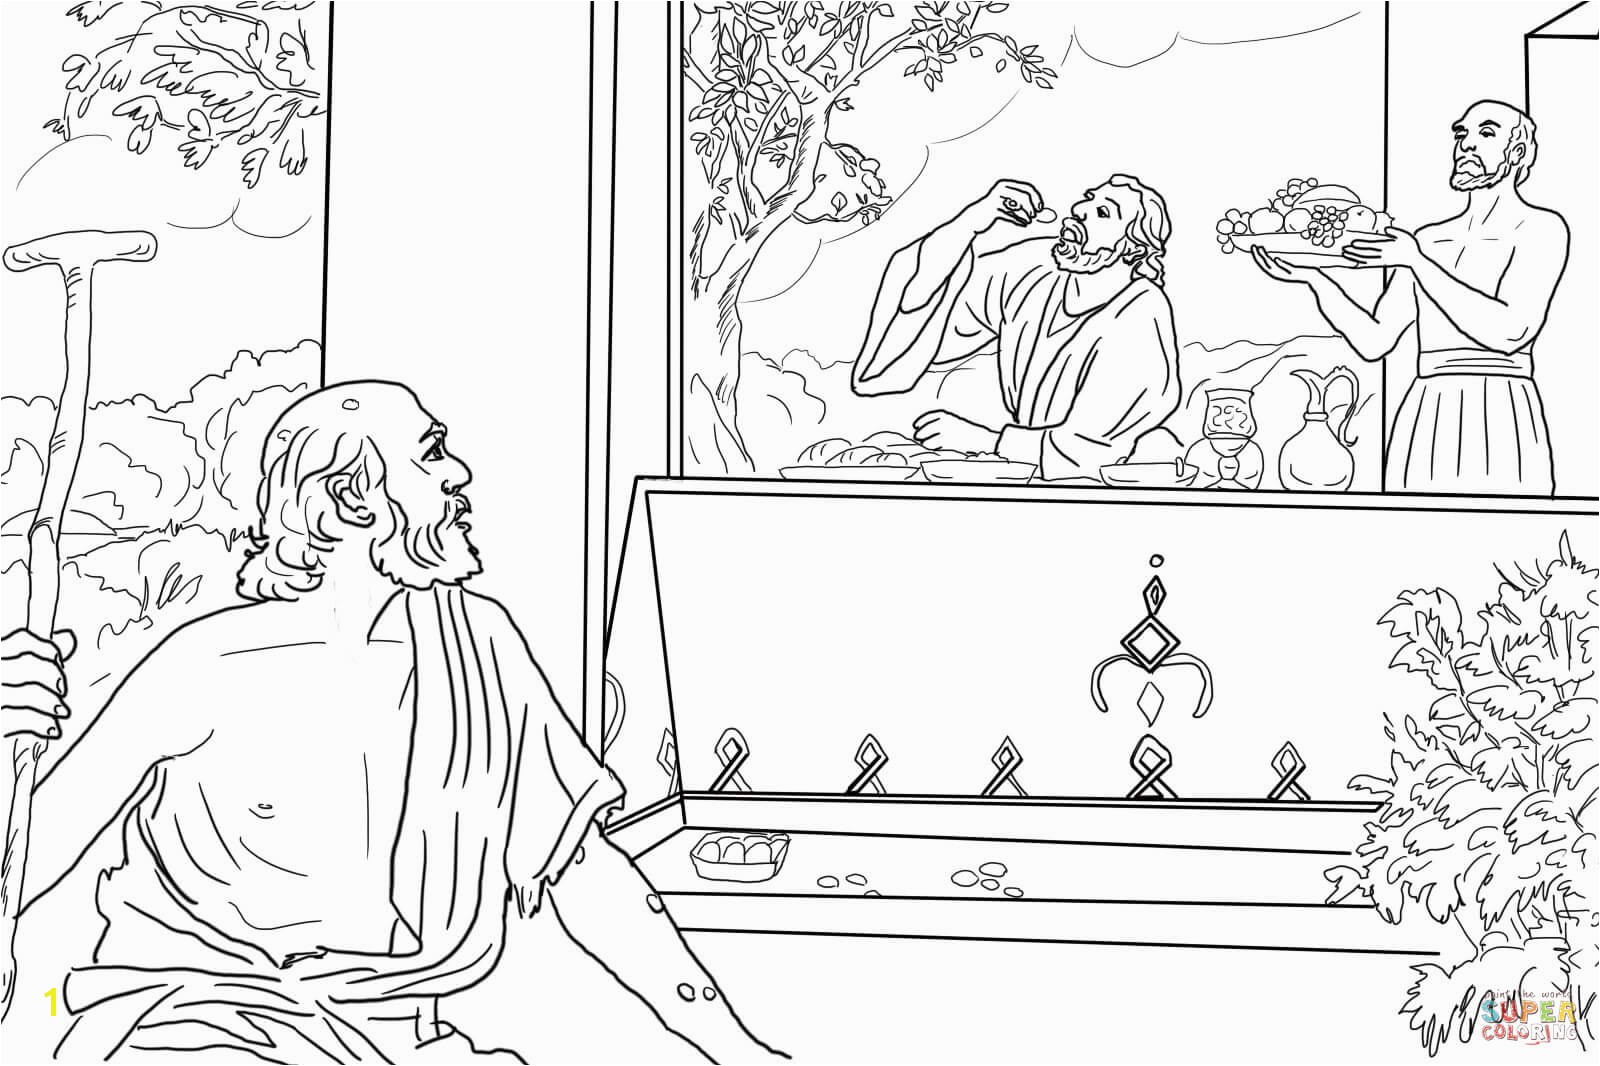 the Rich Man and Lazarus coloring pages